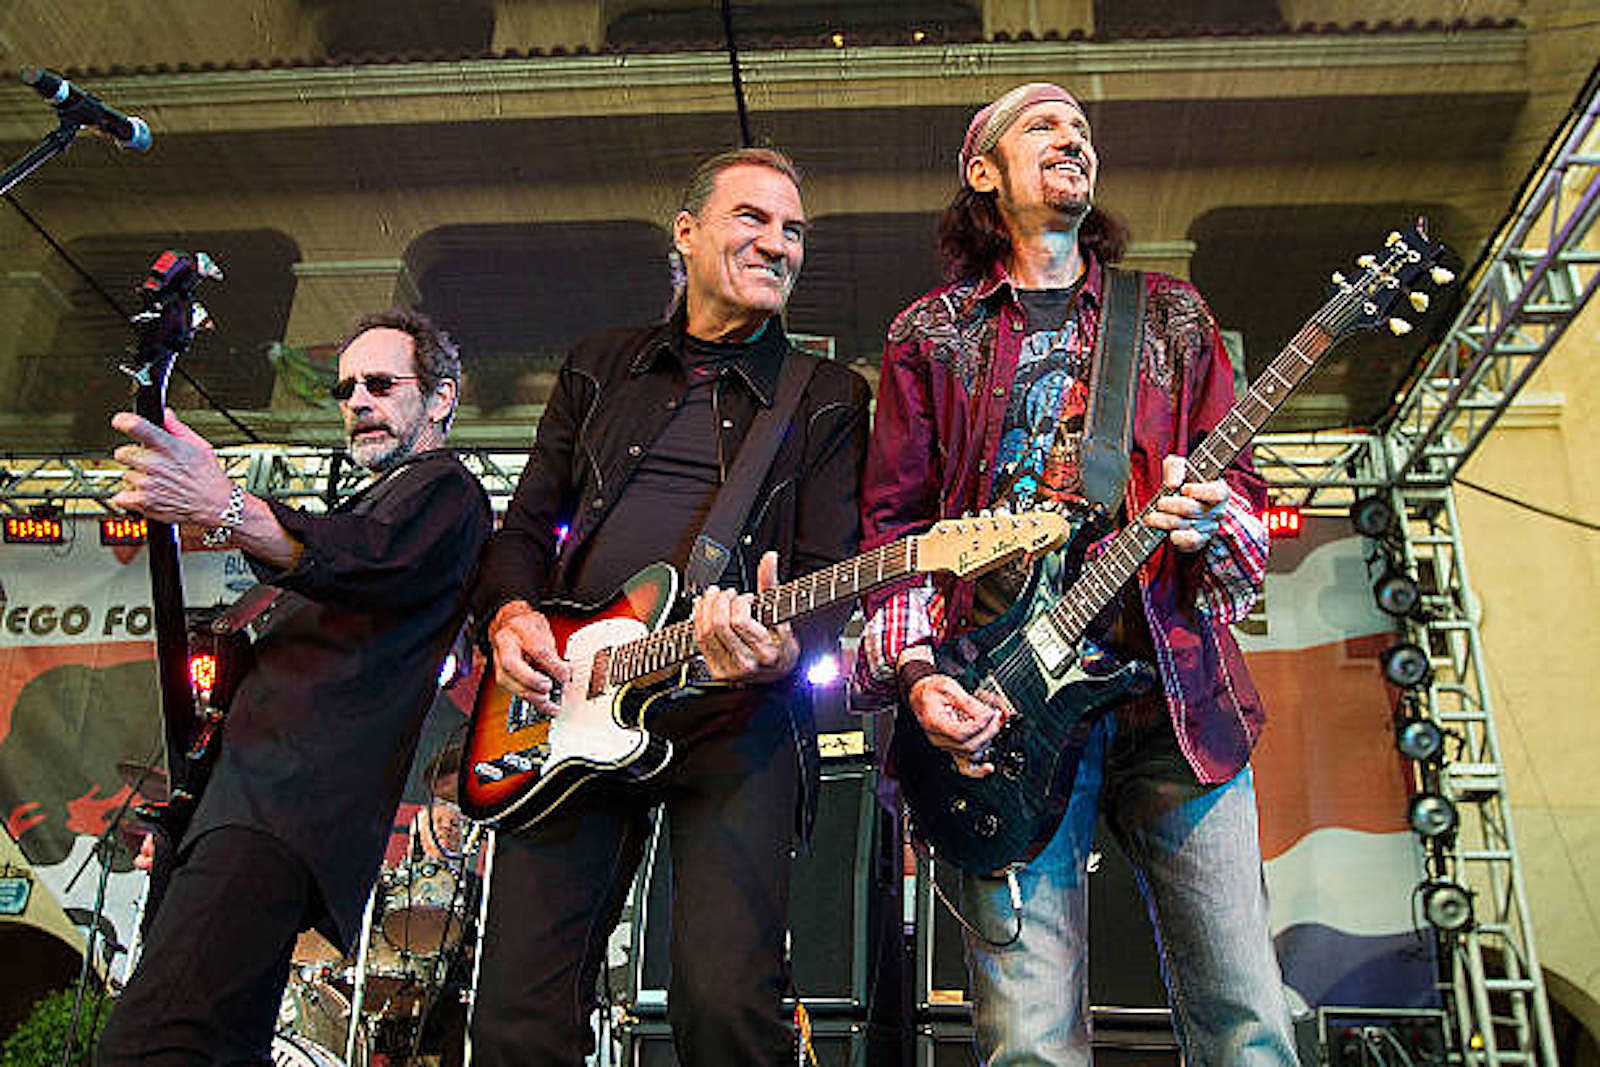 Grand Funk Railroad Feed Off Crowd's Energy At First Concert Back